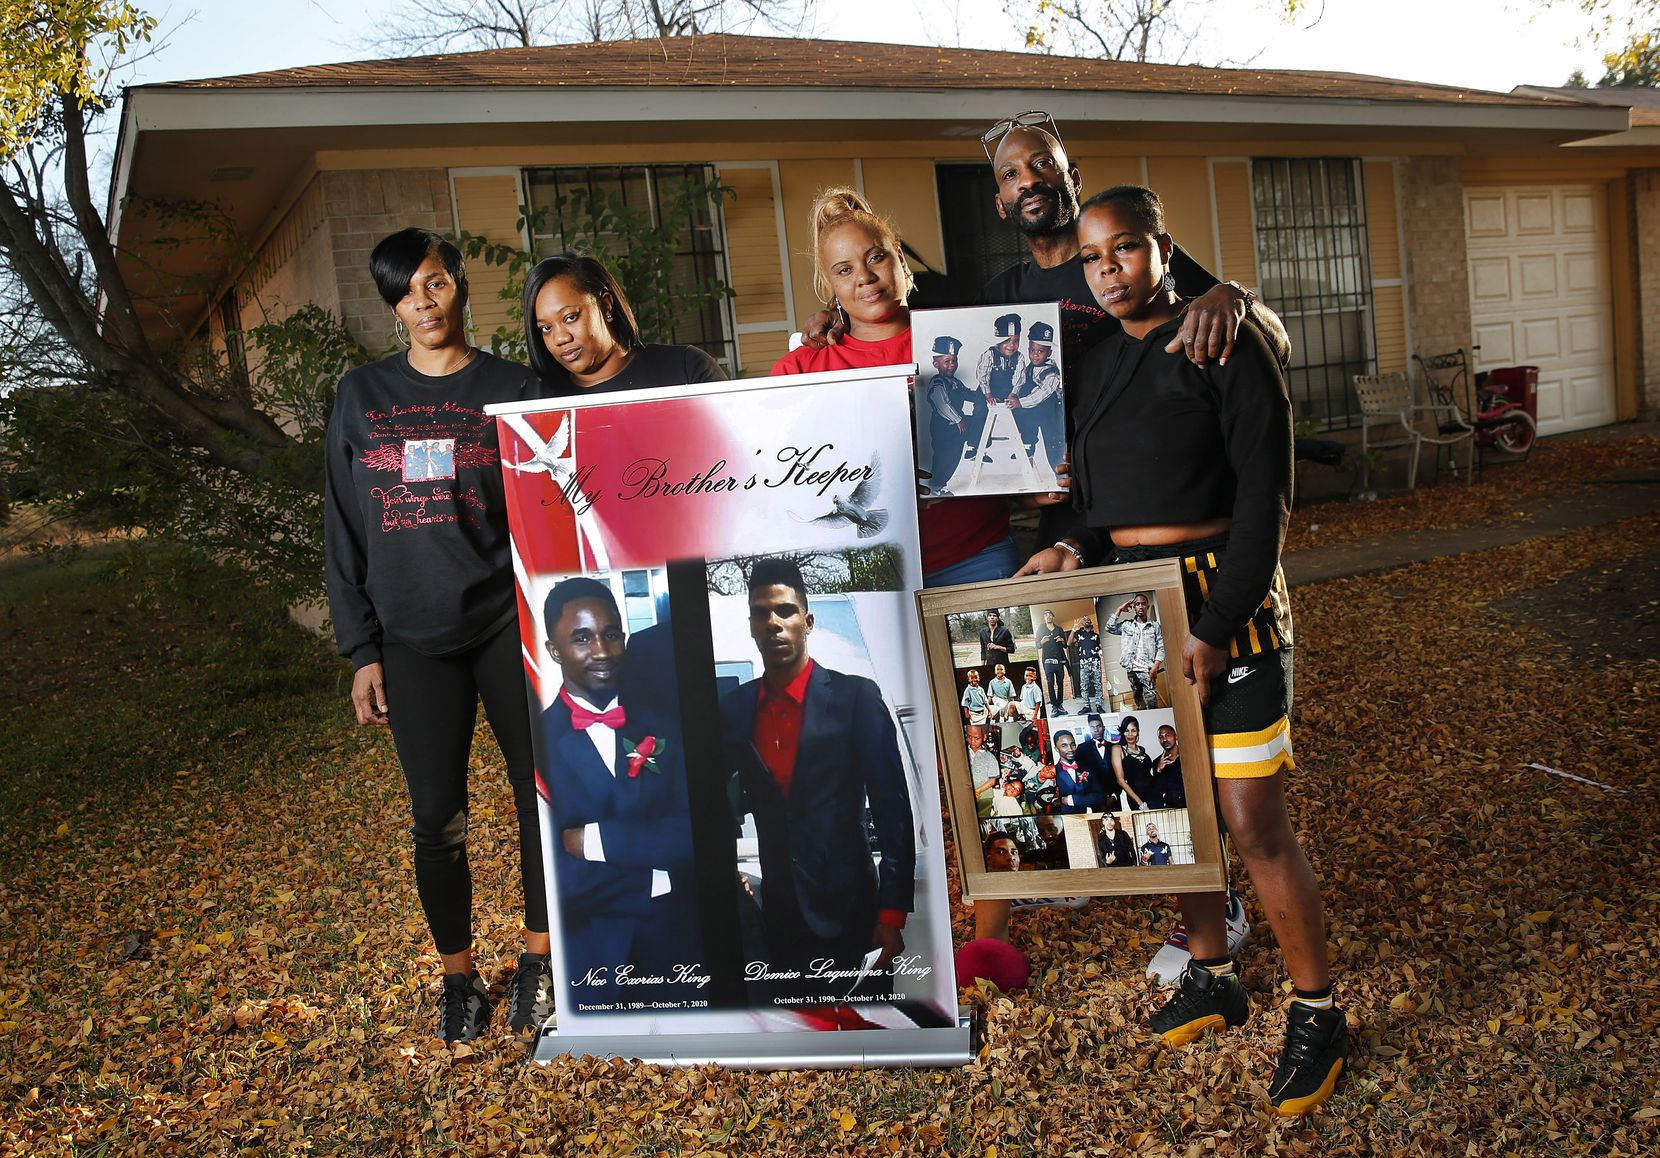 Antanique Johnson (left) and Richard King (second from right), who lost their sons Demico and Nico King last month, pose with photos of them outside their Dallas home, Thursday, November 19, 2020. Joining them from left are their cousins Kelsey Johnson, Chardondra Johnson and Antanique Ray. The two were shot on the same day and died within 10 days of each other.